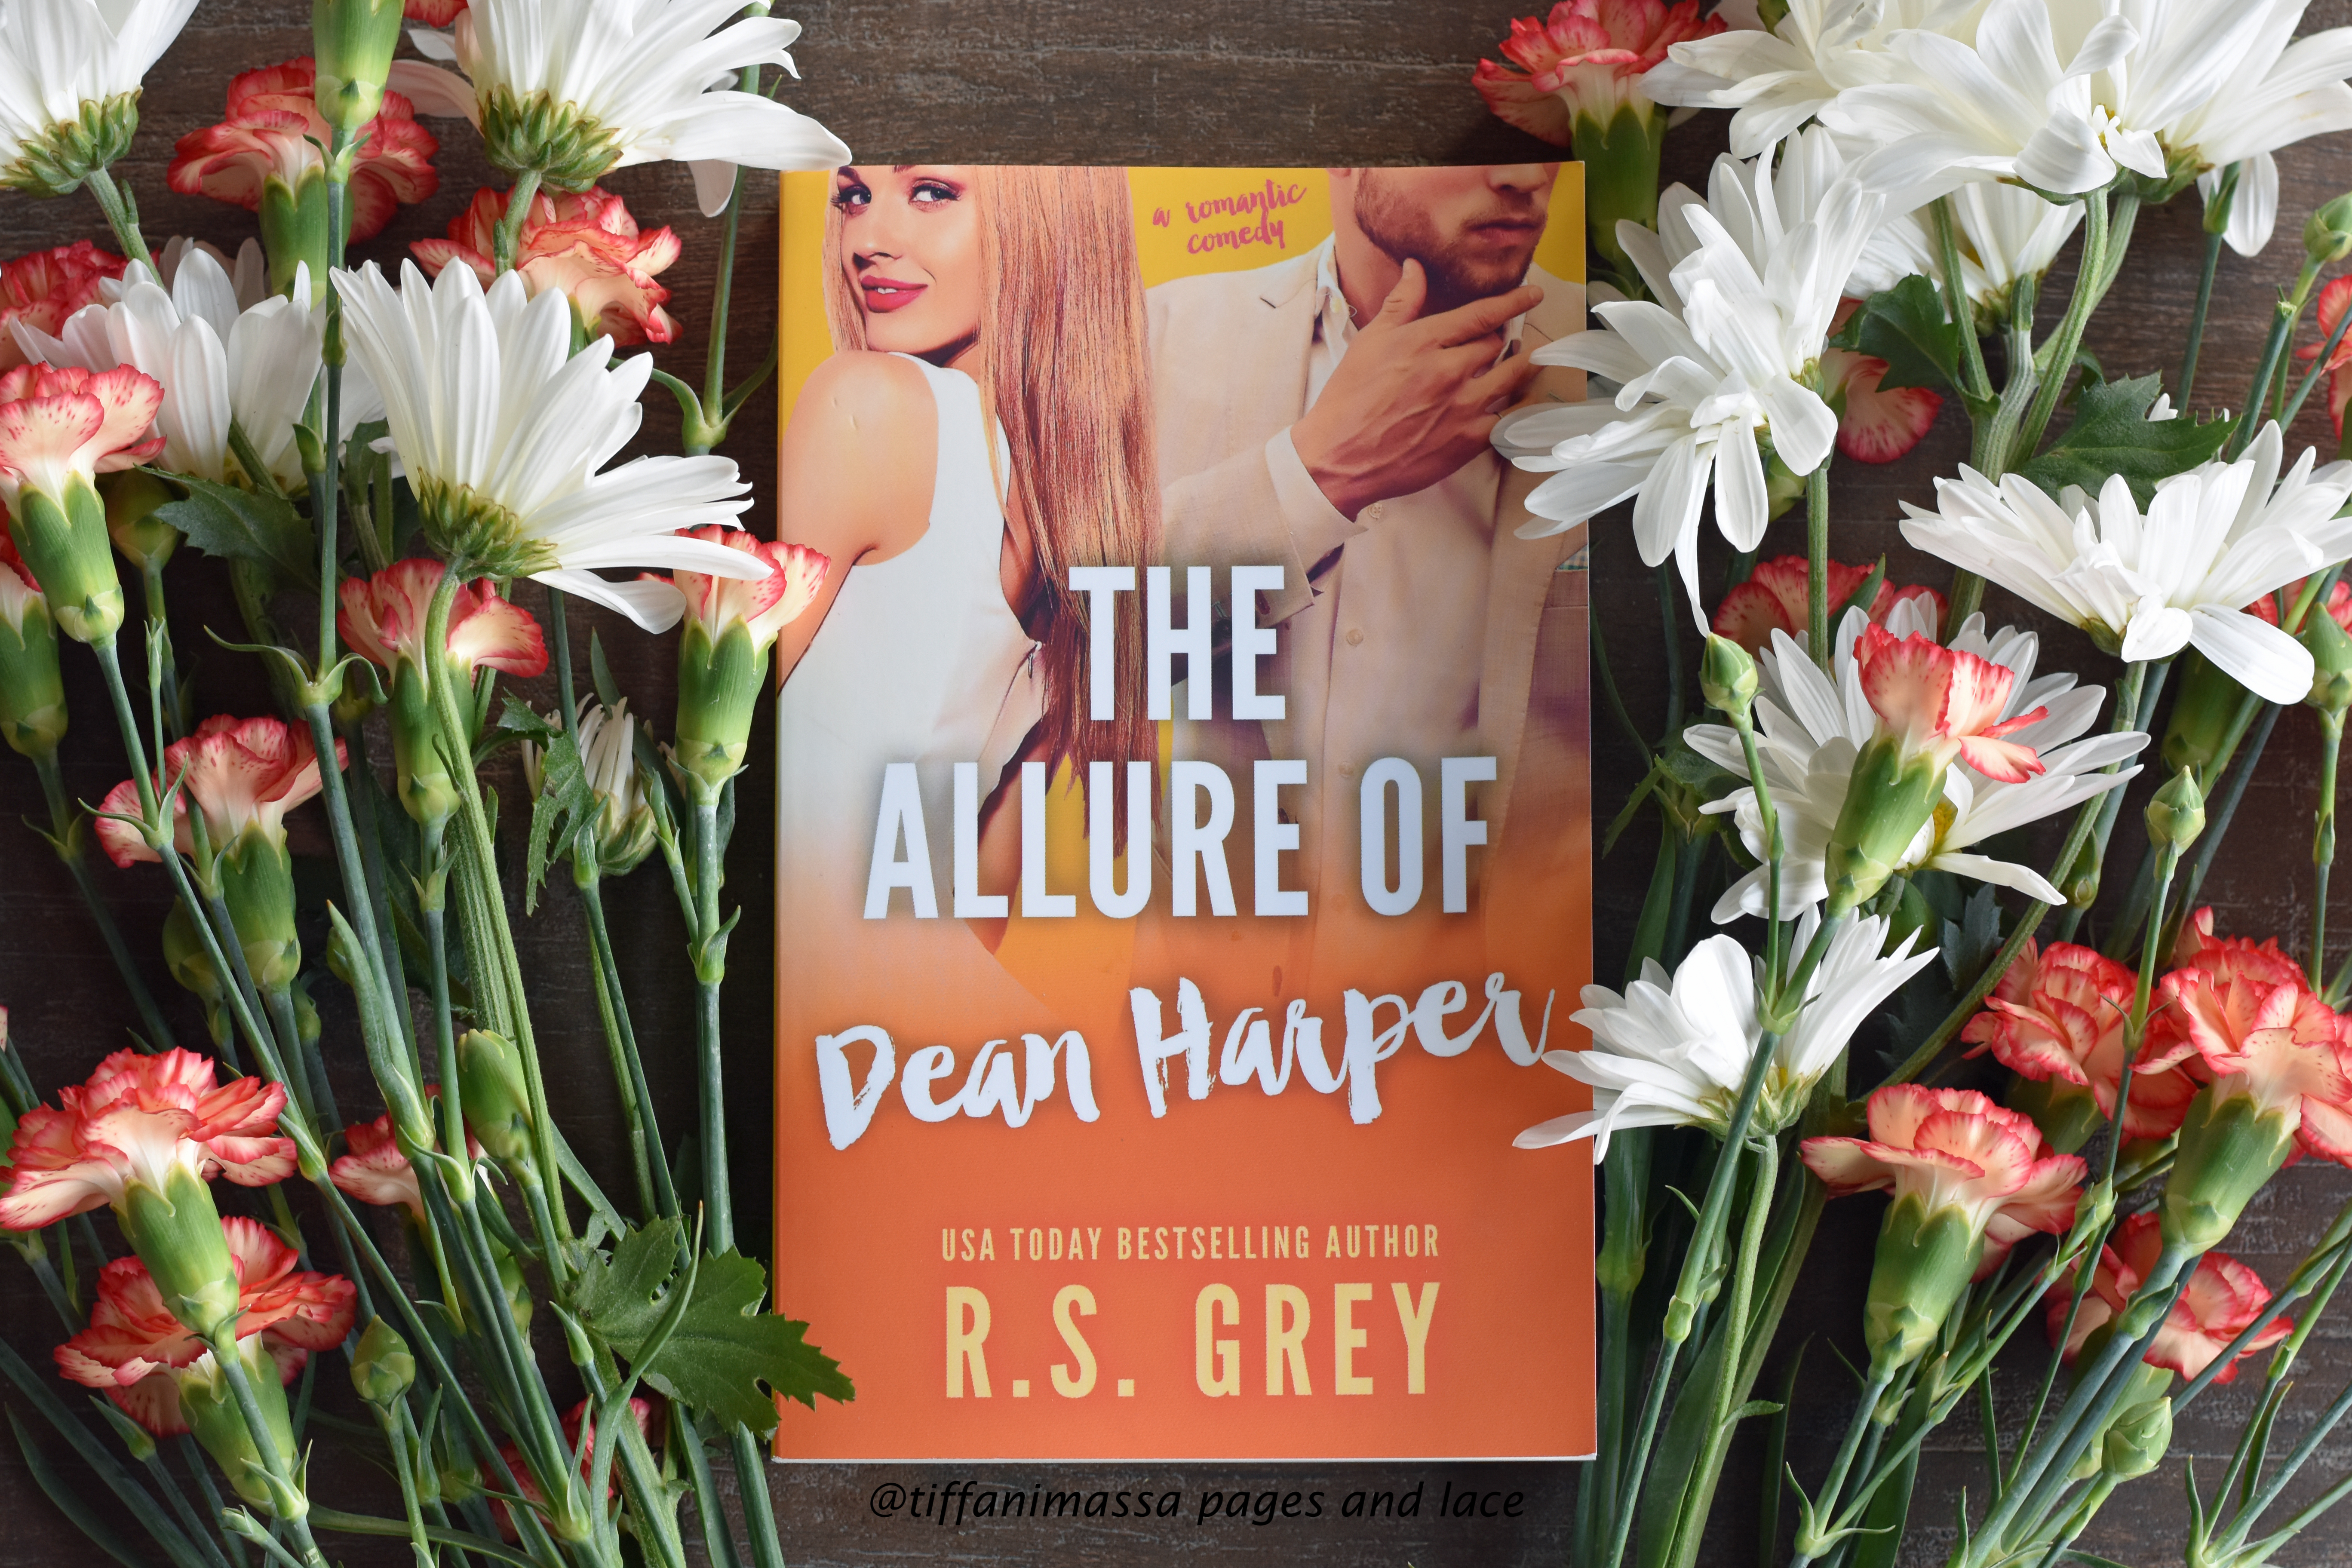 giveaway – Signed R.S. Grey The Allure of Dean Harper